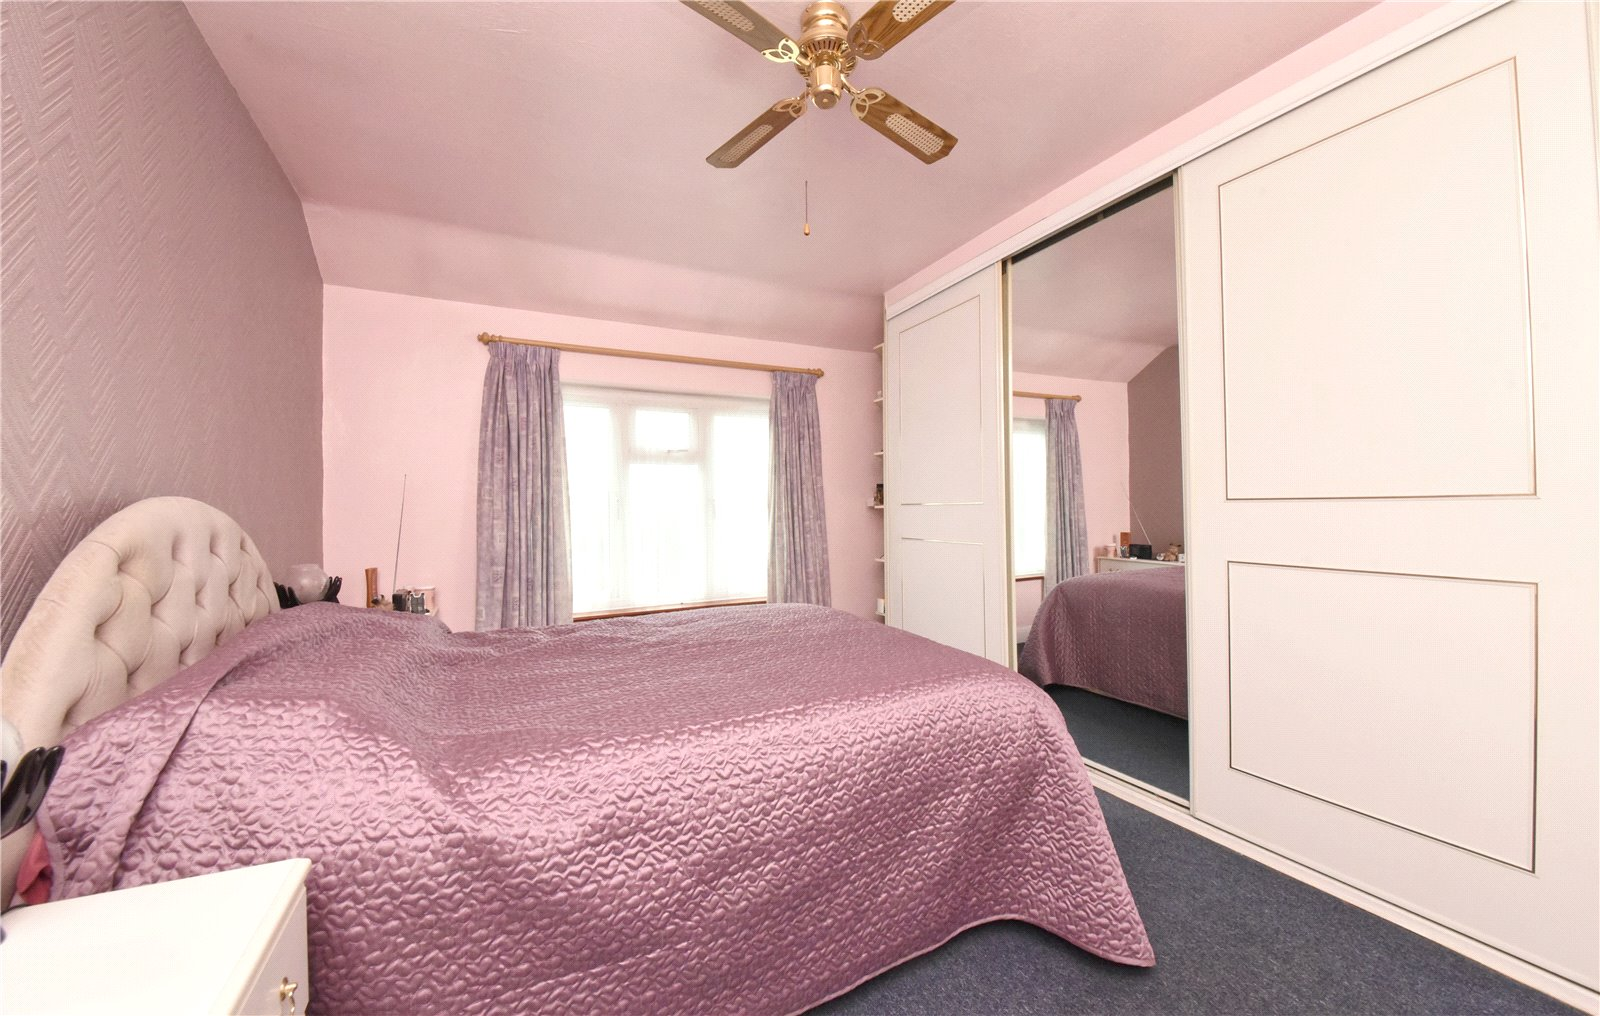 3 bed house for sale in Whetstone, N20 0DG 6